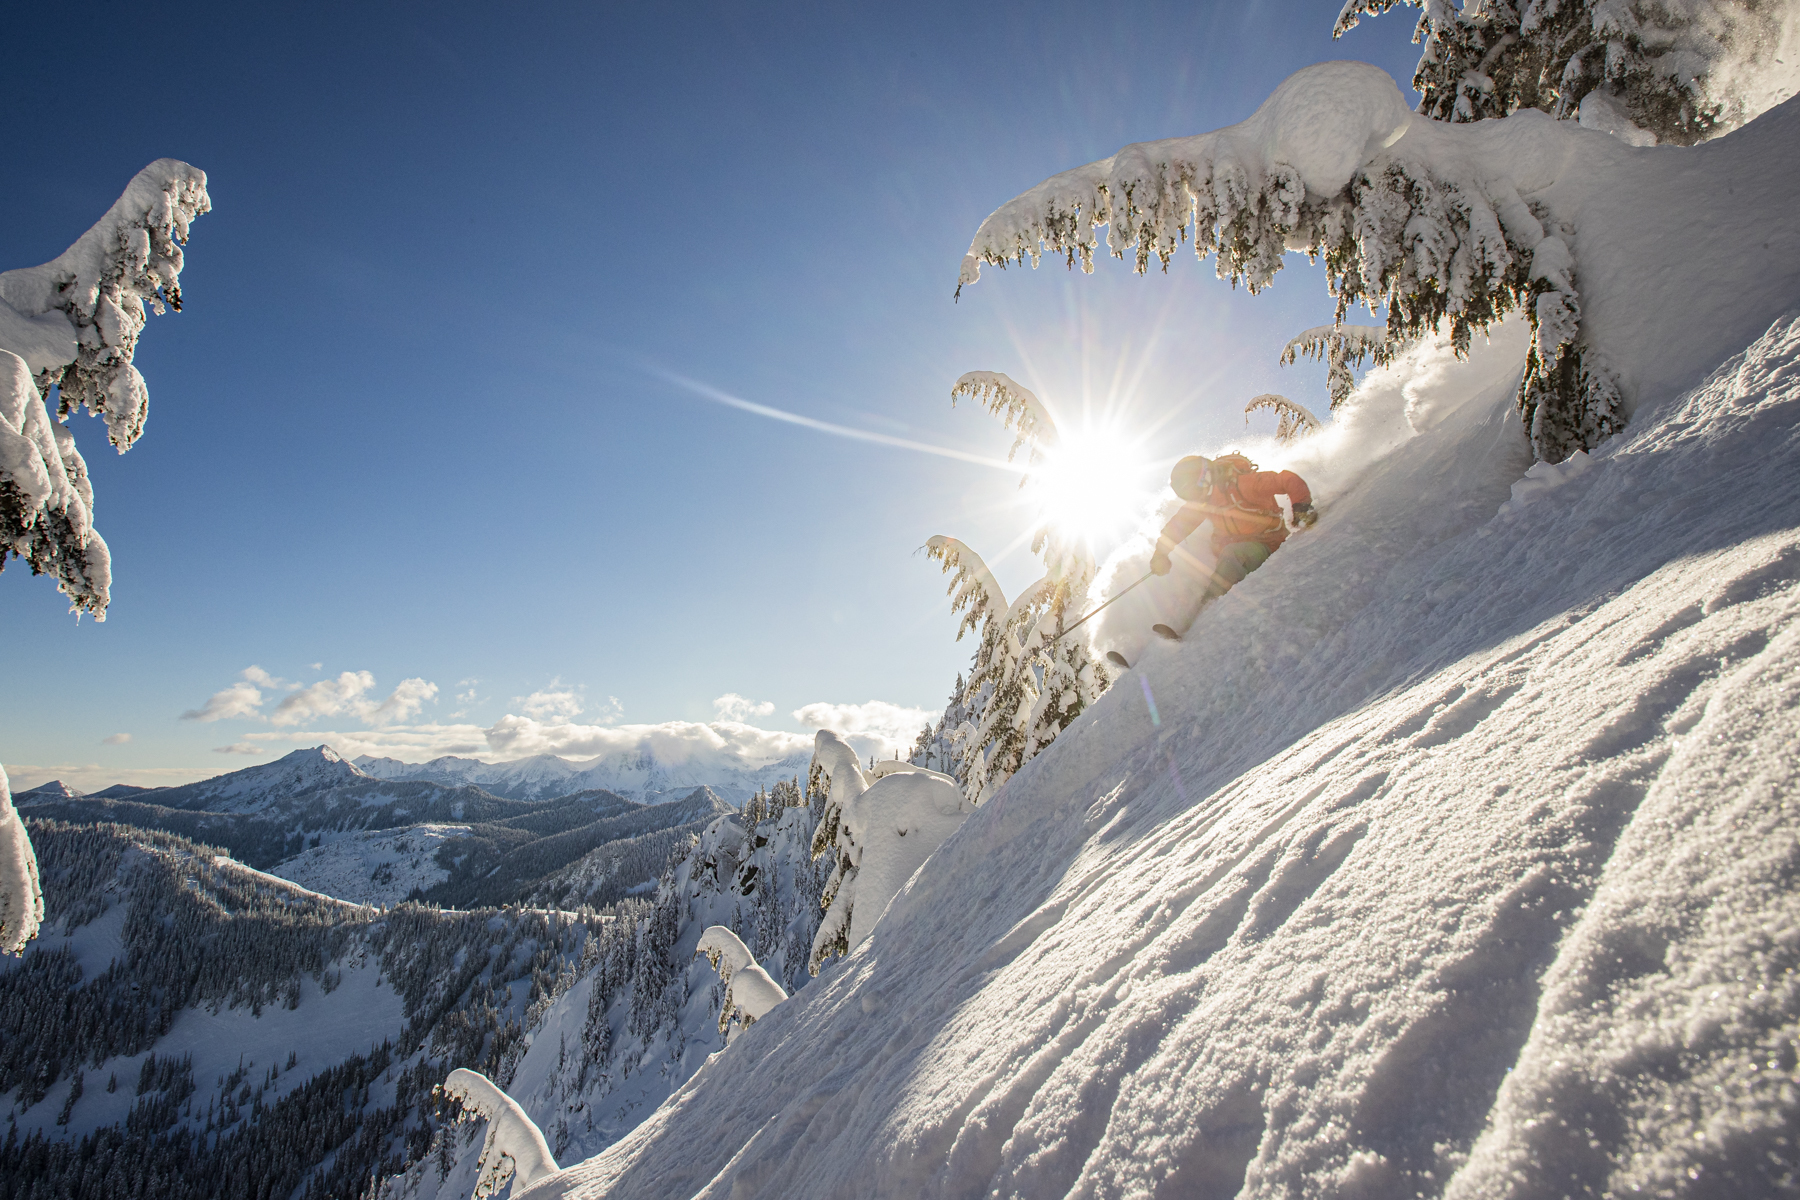 Ingrid Backstrom skiing powder snow at Stevens Pass, WA. 2019